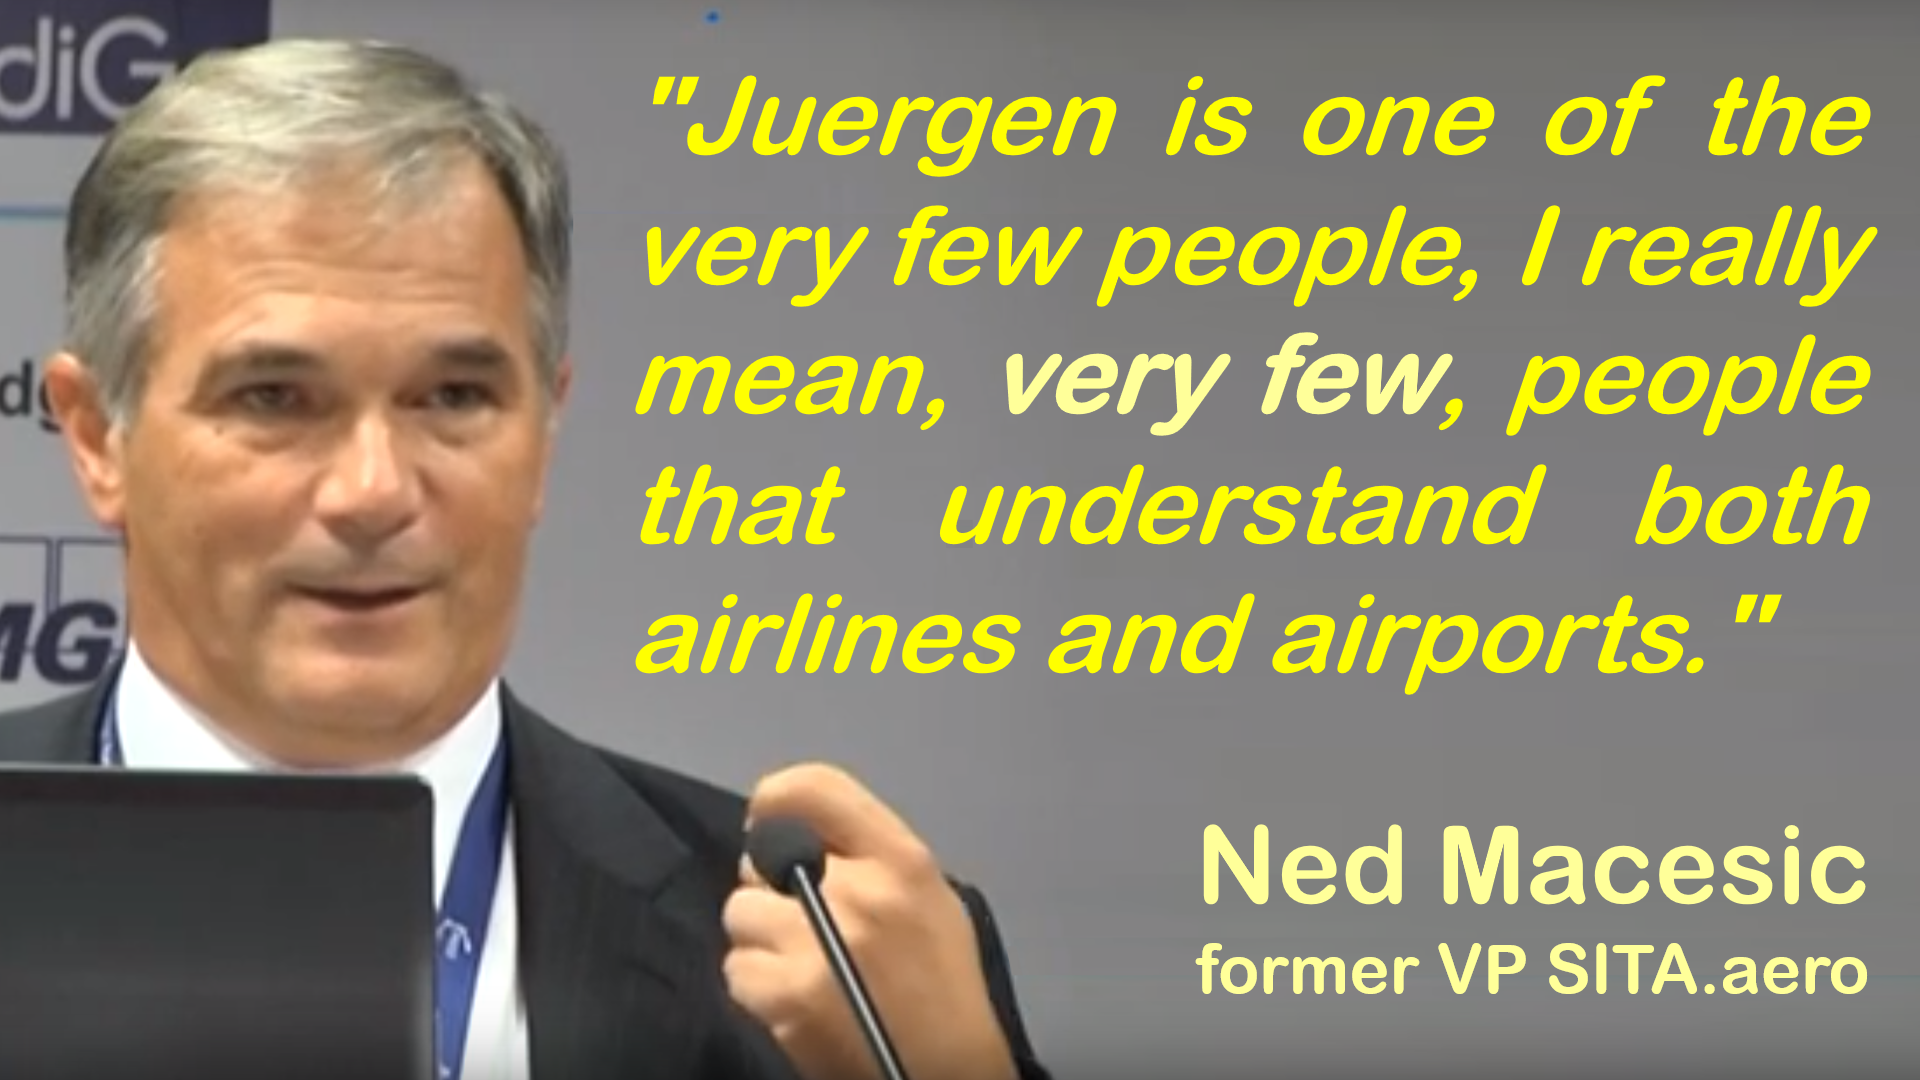 Juergen is one of the very few people, I really mean, VERY FEW, people that understand both airlines and airports.